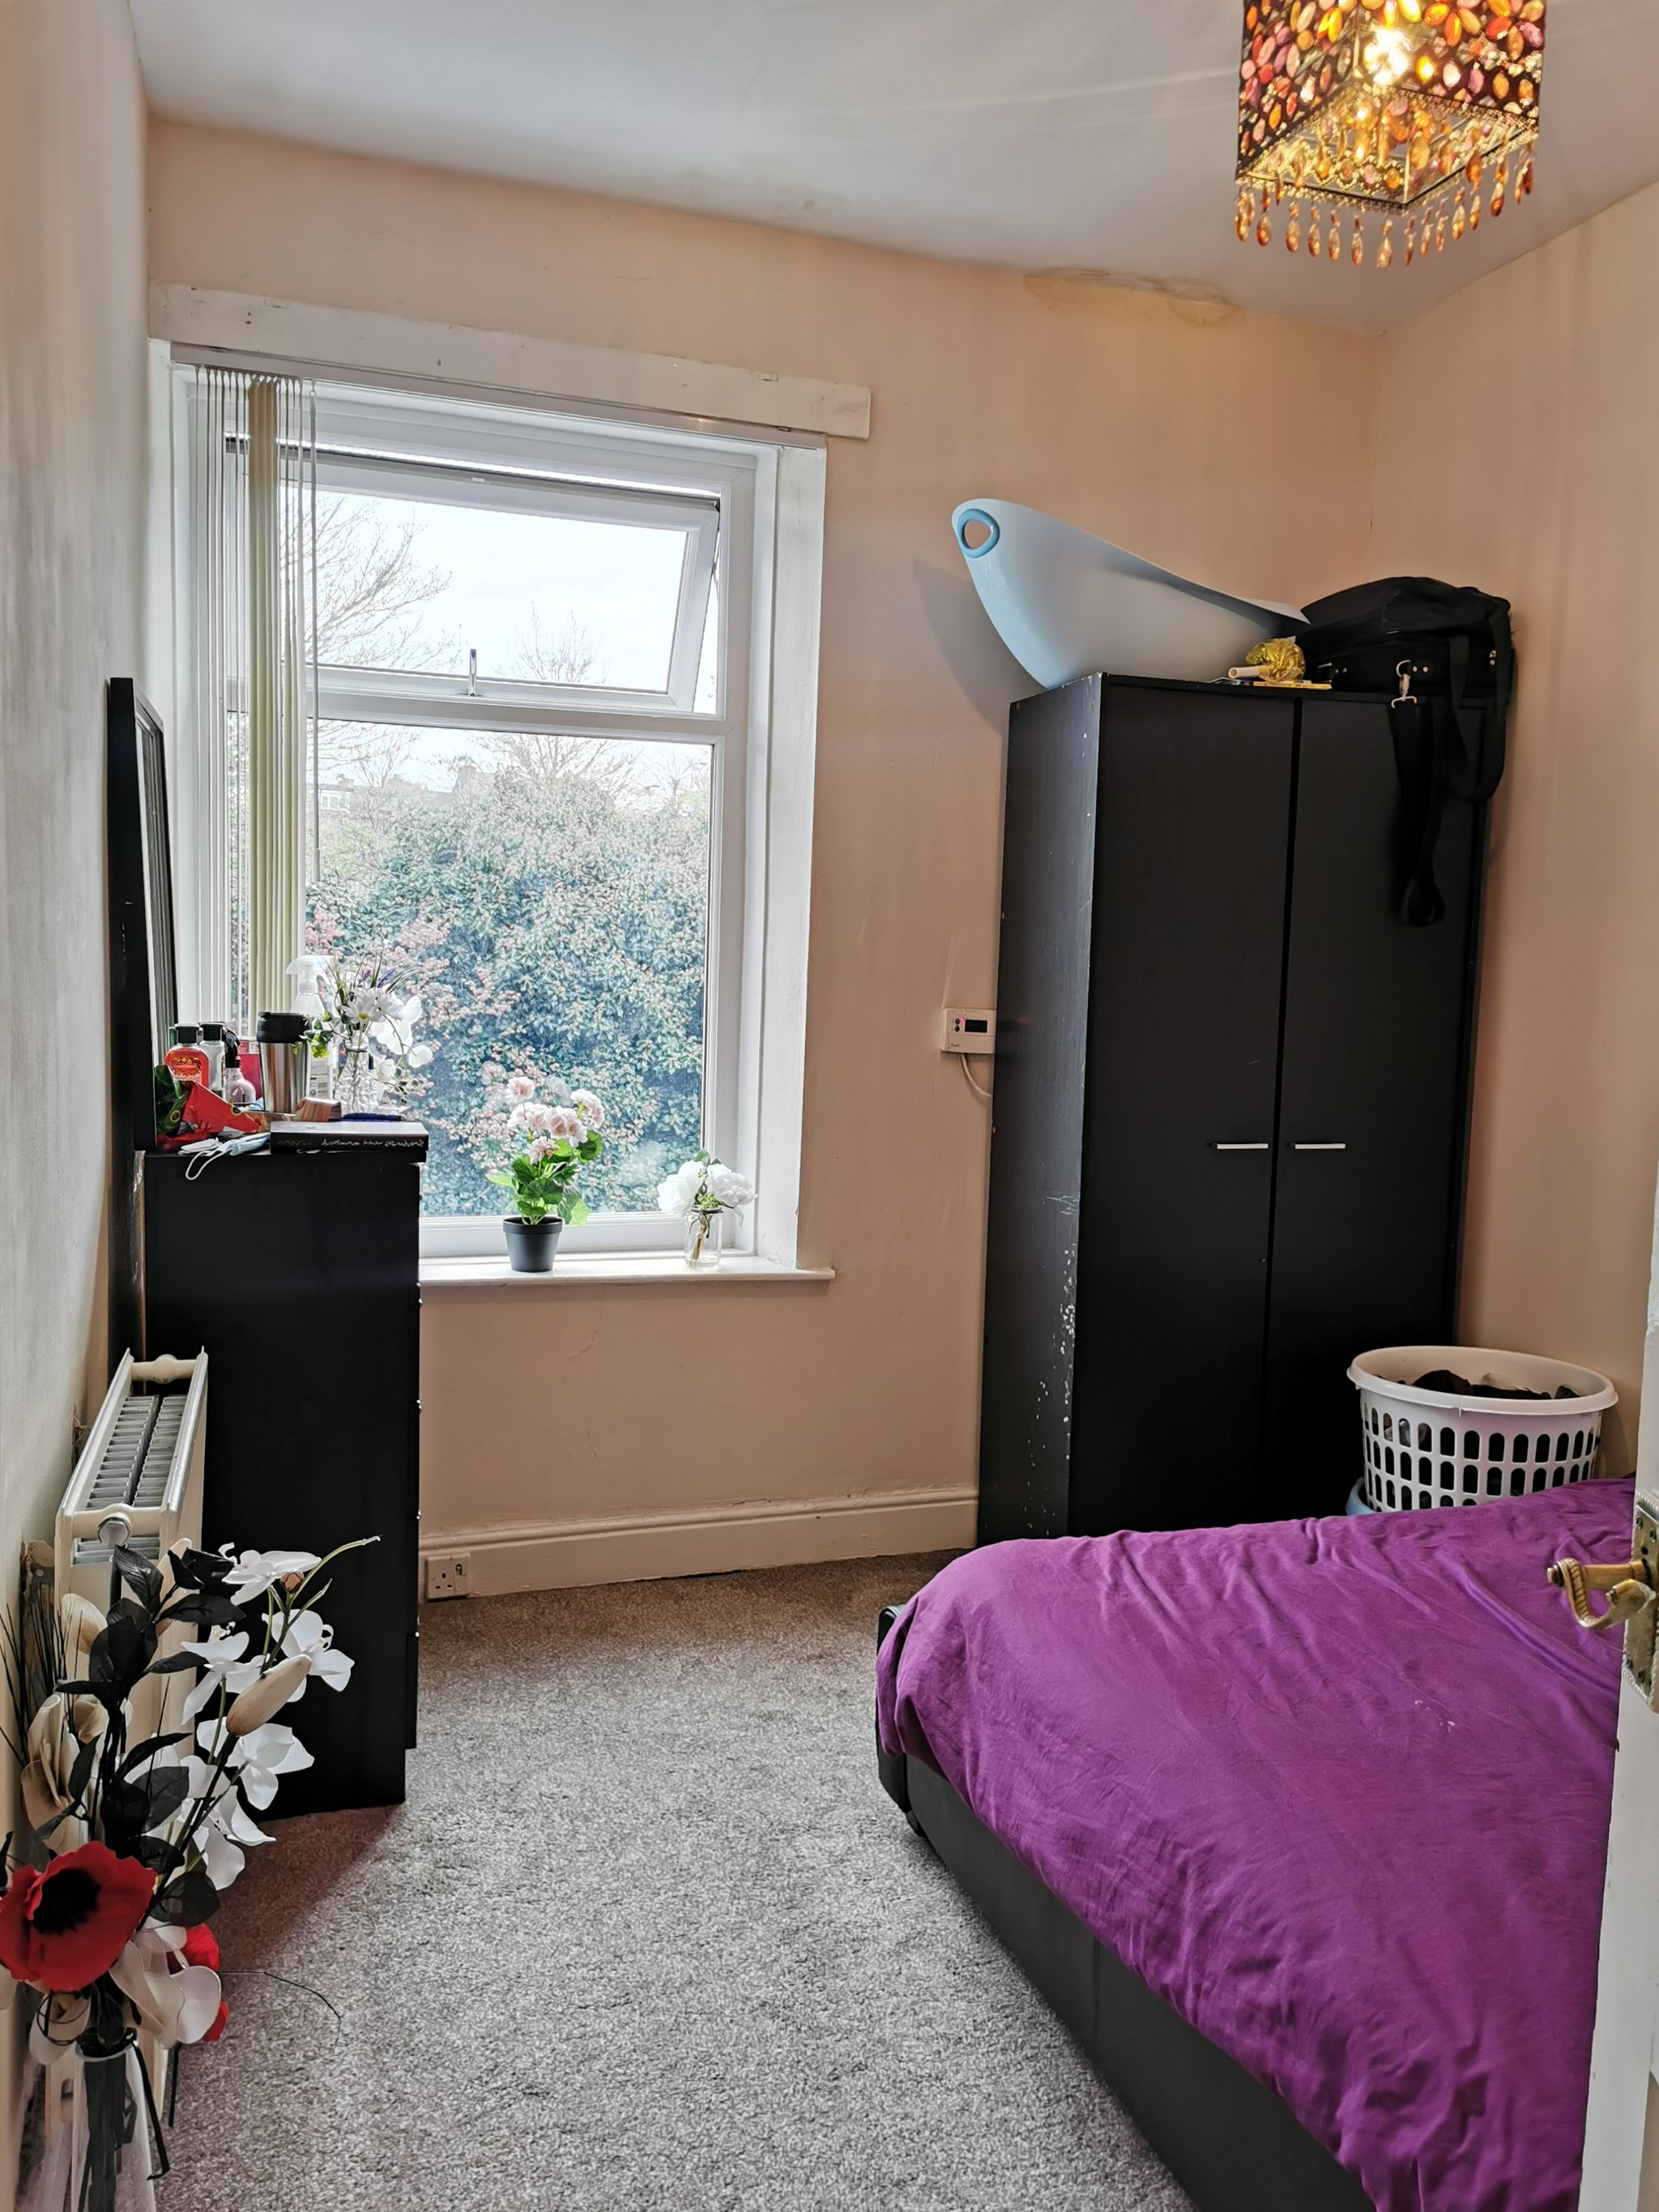 4 bedroom mid terraced house For Sale in Bradford - Photograph 8.